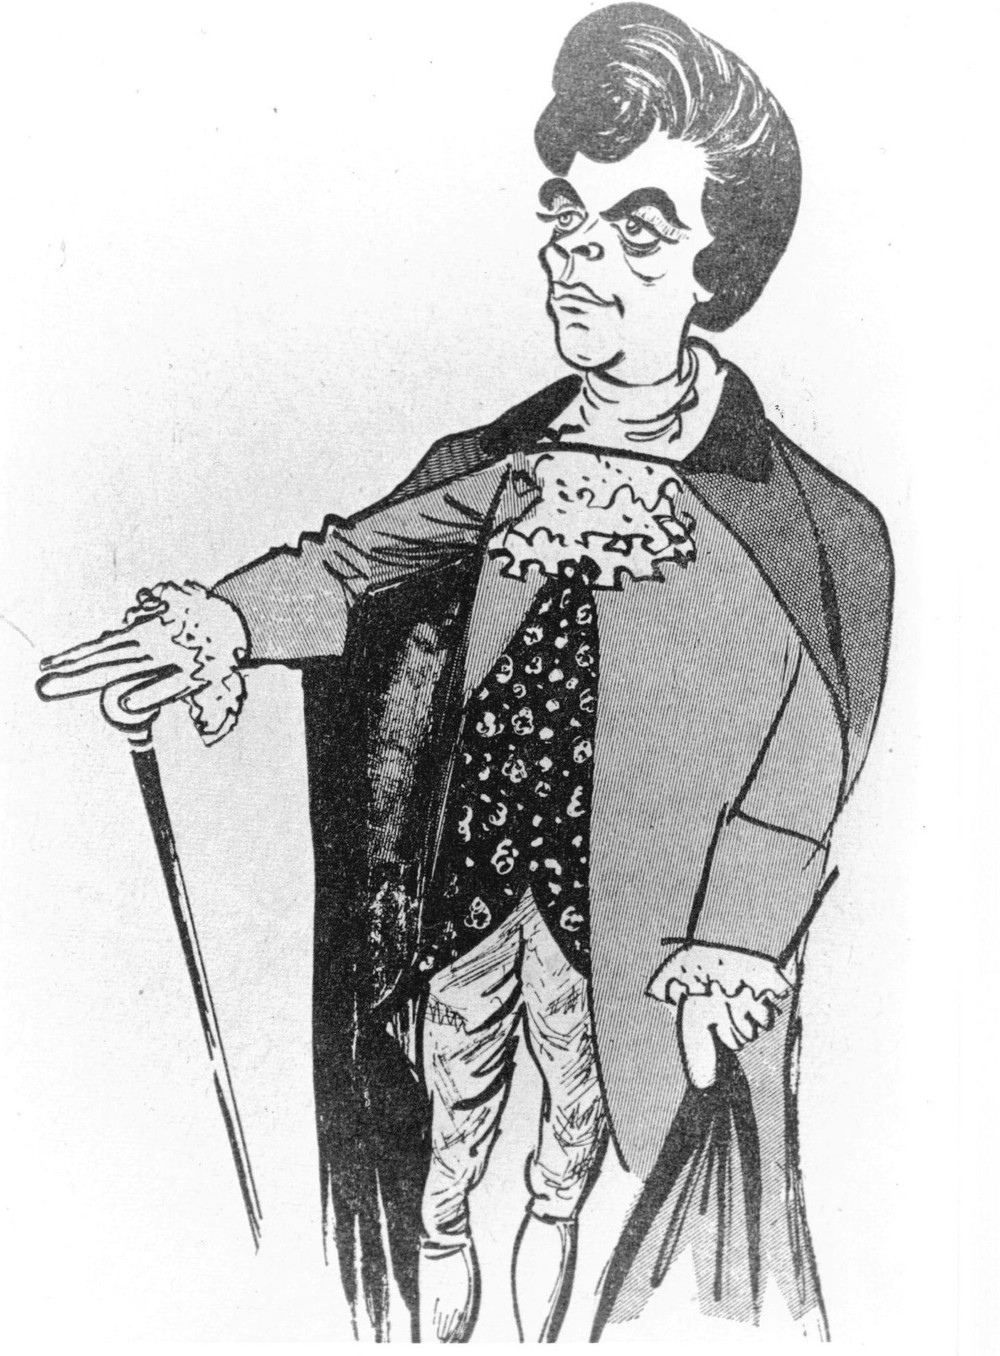 01_John Cairney as James Boswell in 'Young Auchinleck' - caricature by Emilio Coia 1962.jpg